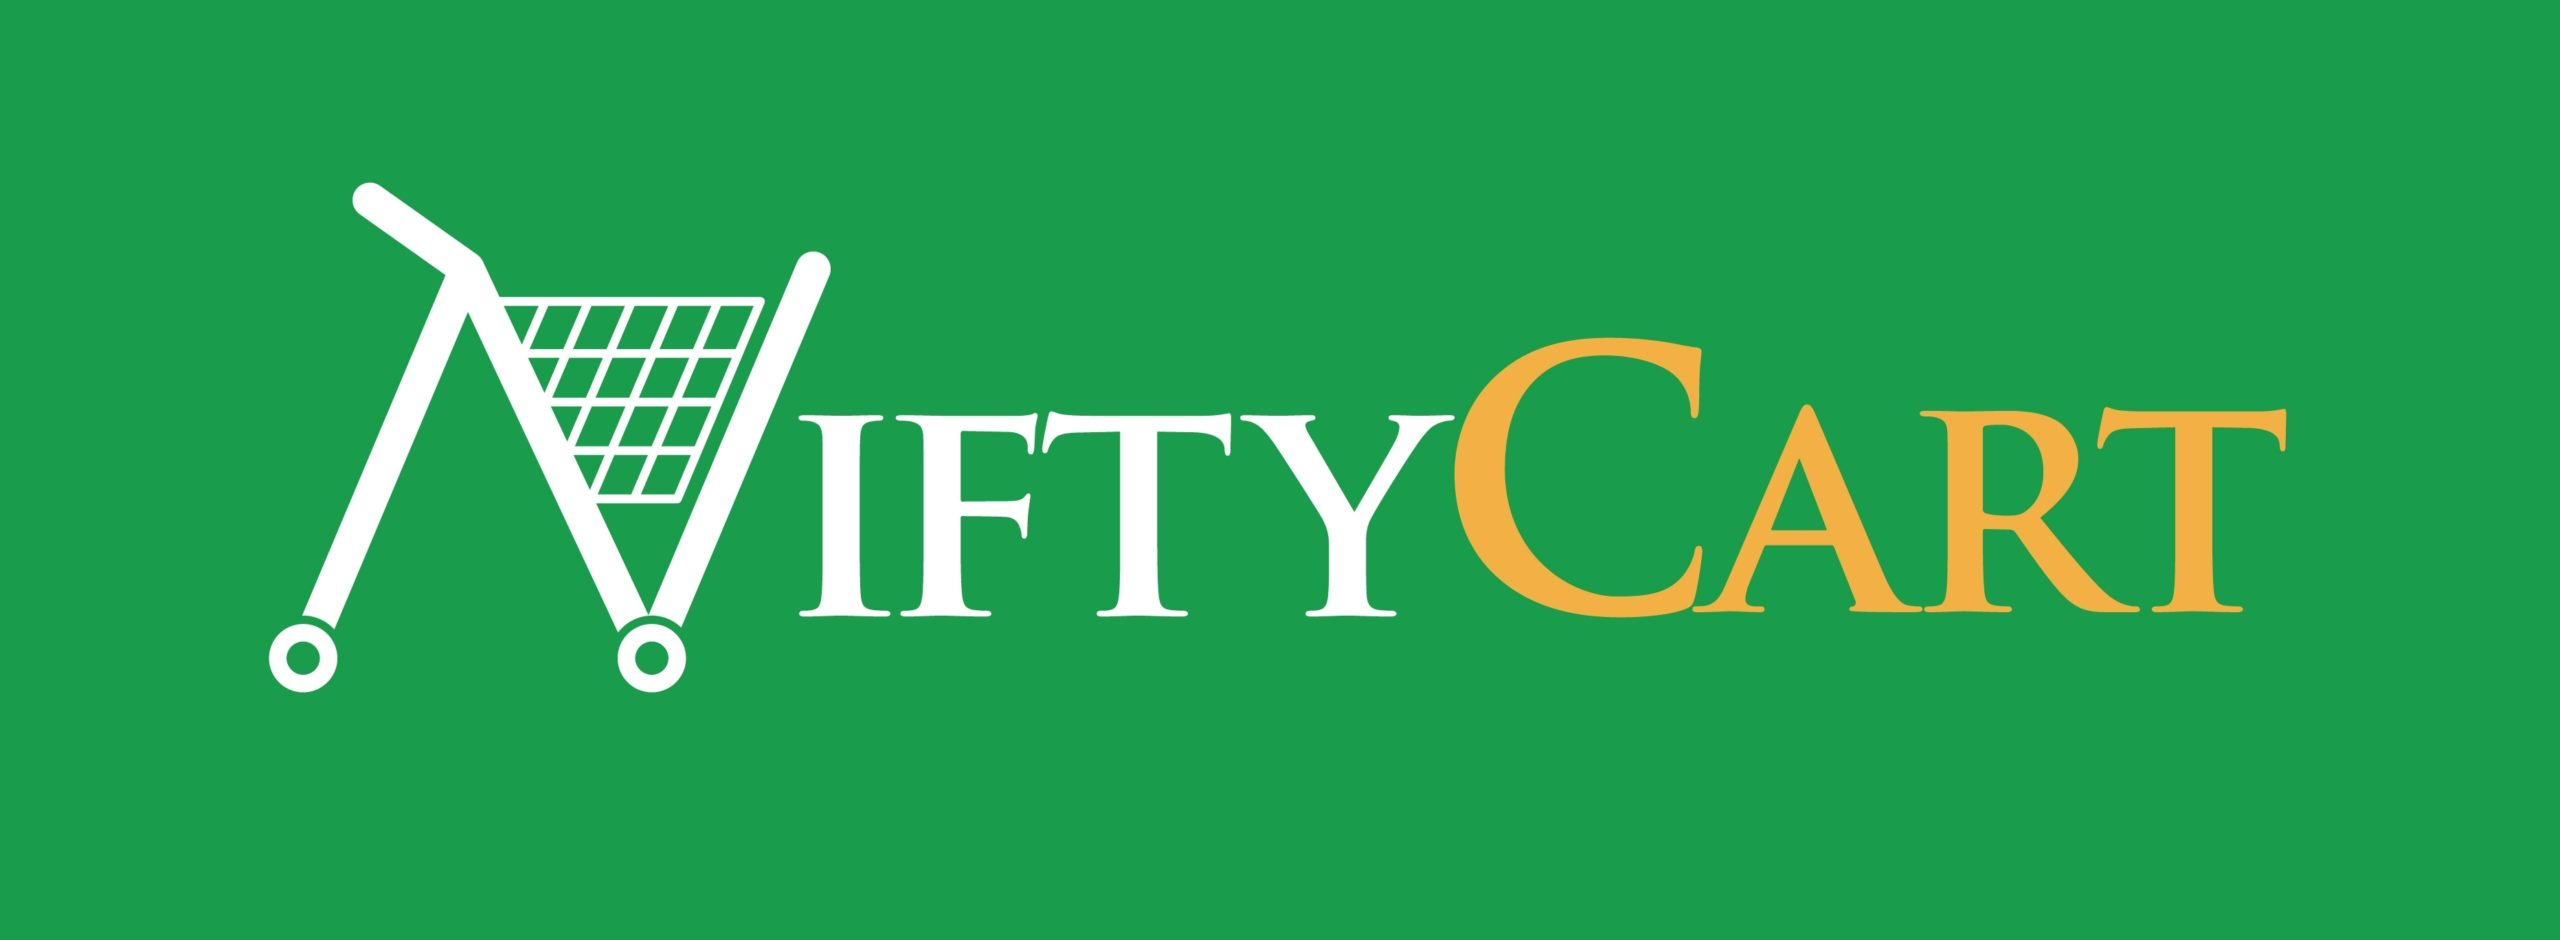 NiftyCart-Green-Cropped-scaled